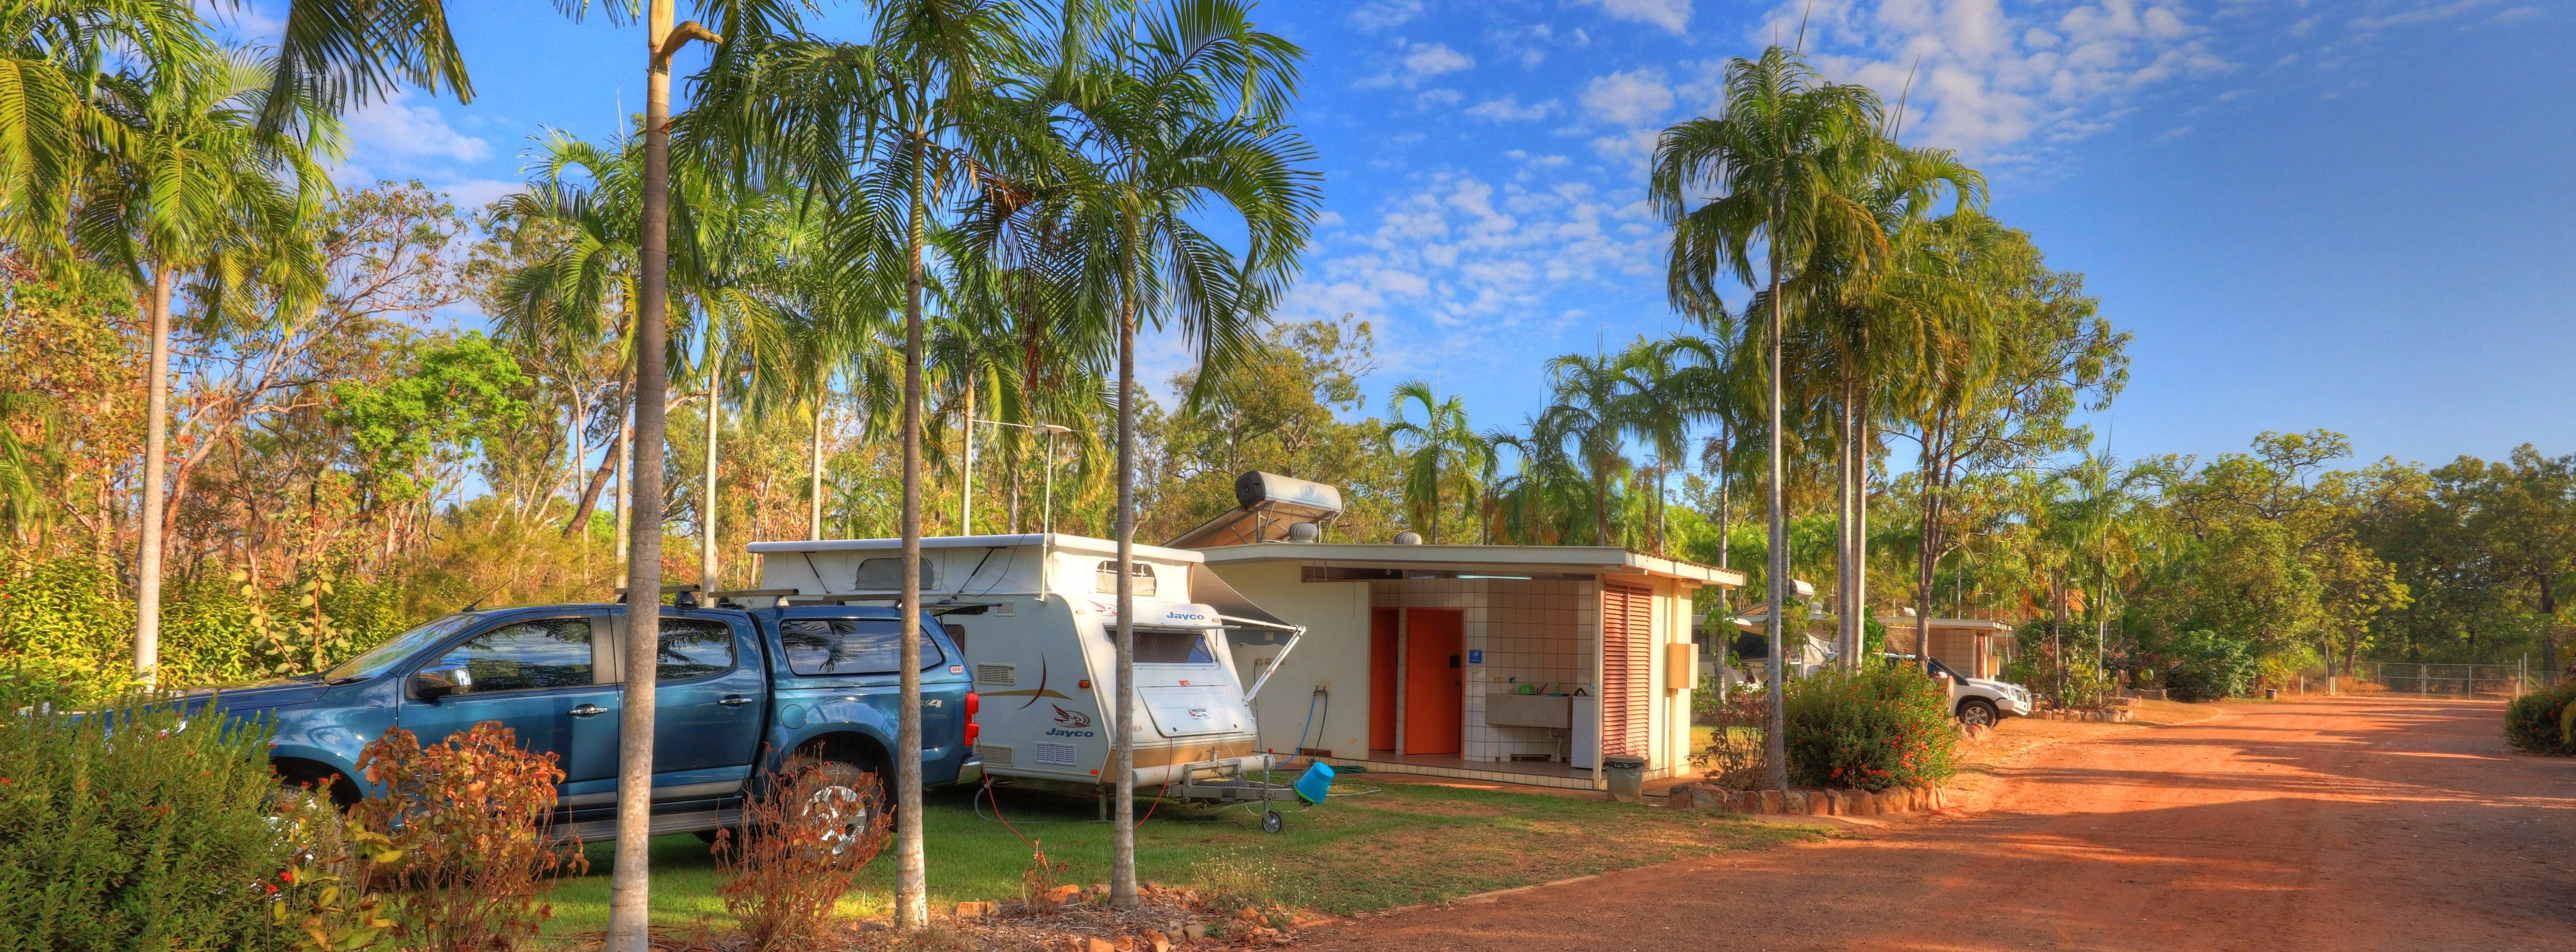 Batchelor Holiday Park - Accommodation Ballina